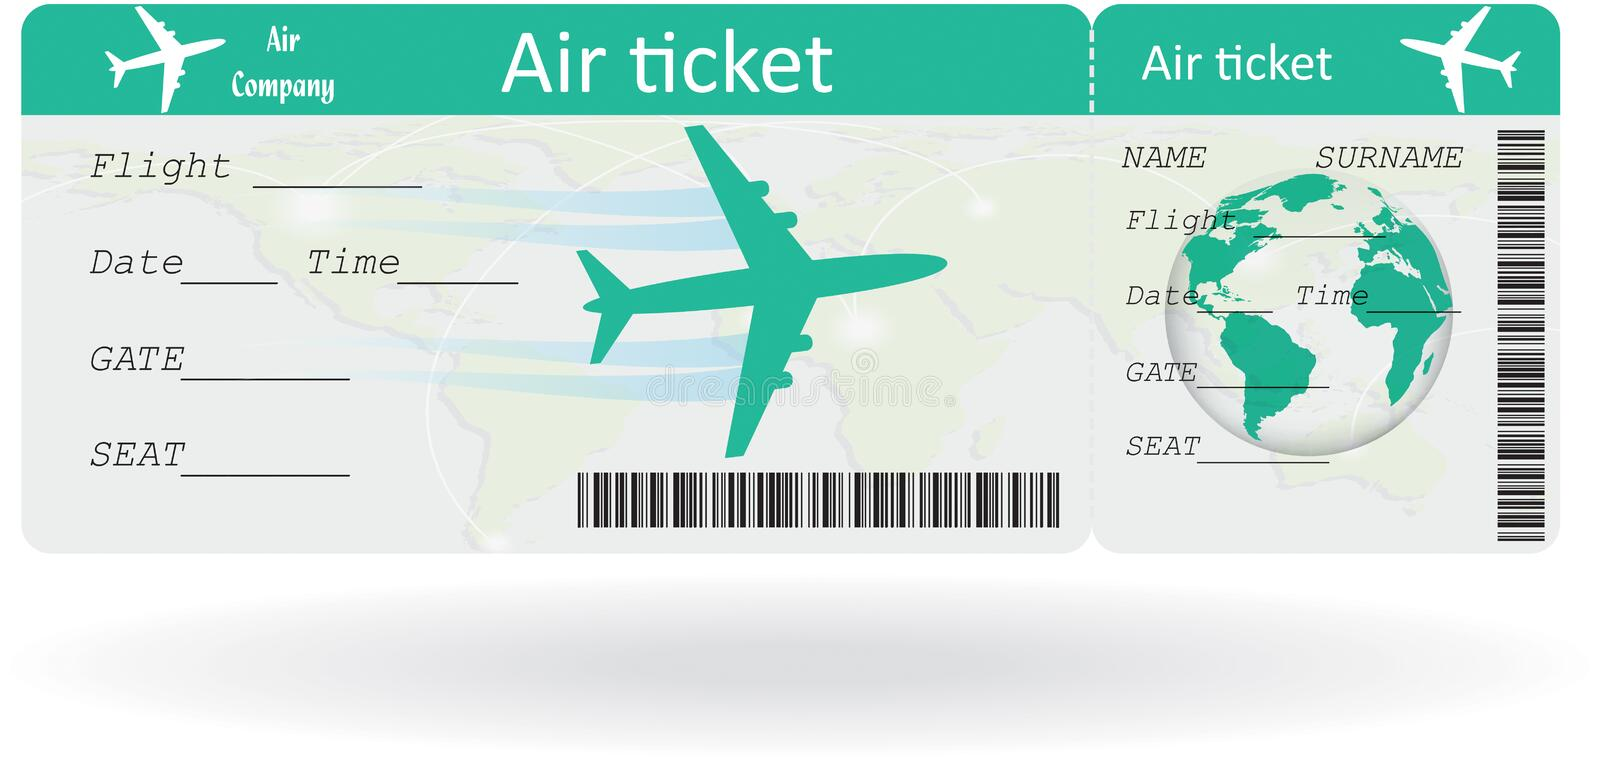 Variant Of Air Ticket Stock Vector Illustration Of